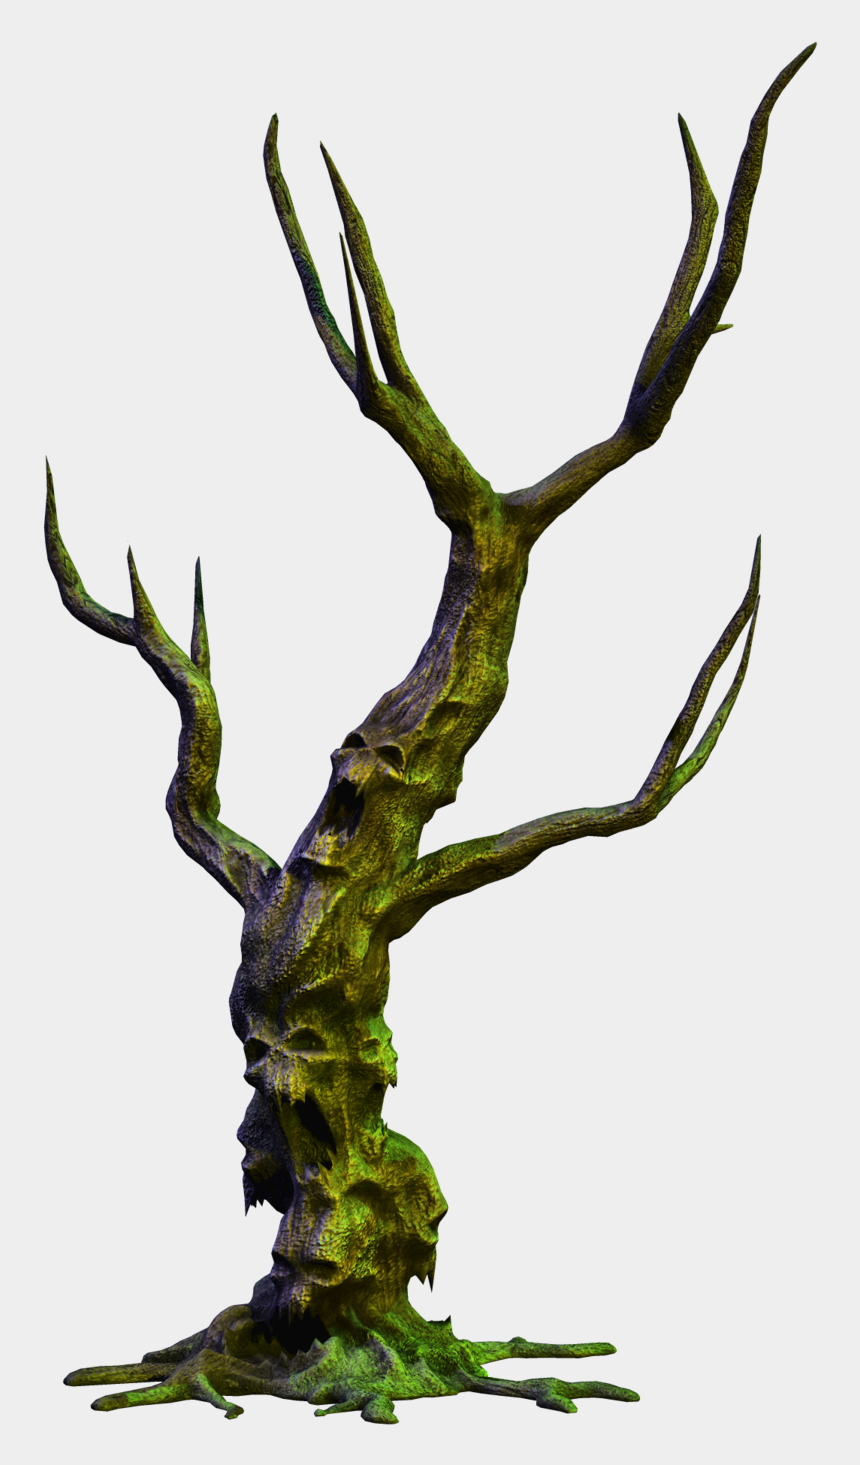 spooky tree clipart, Cartoons - Spooky Tree Png Jpg Download - Old Scary Tree Png